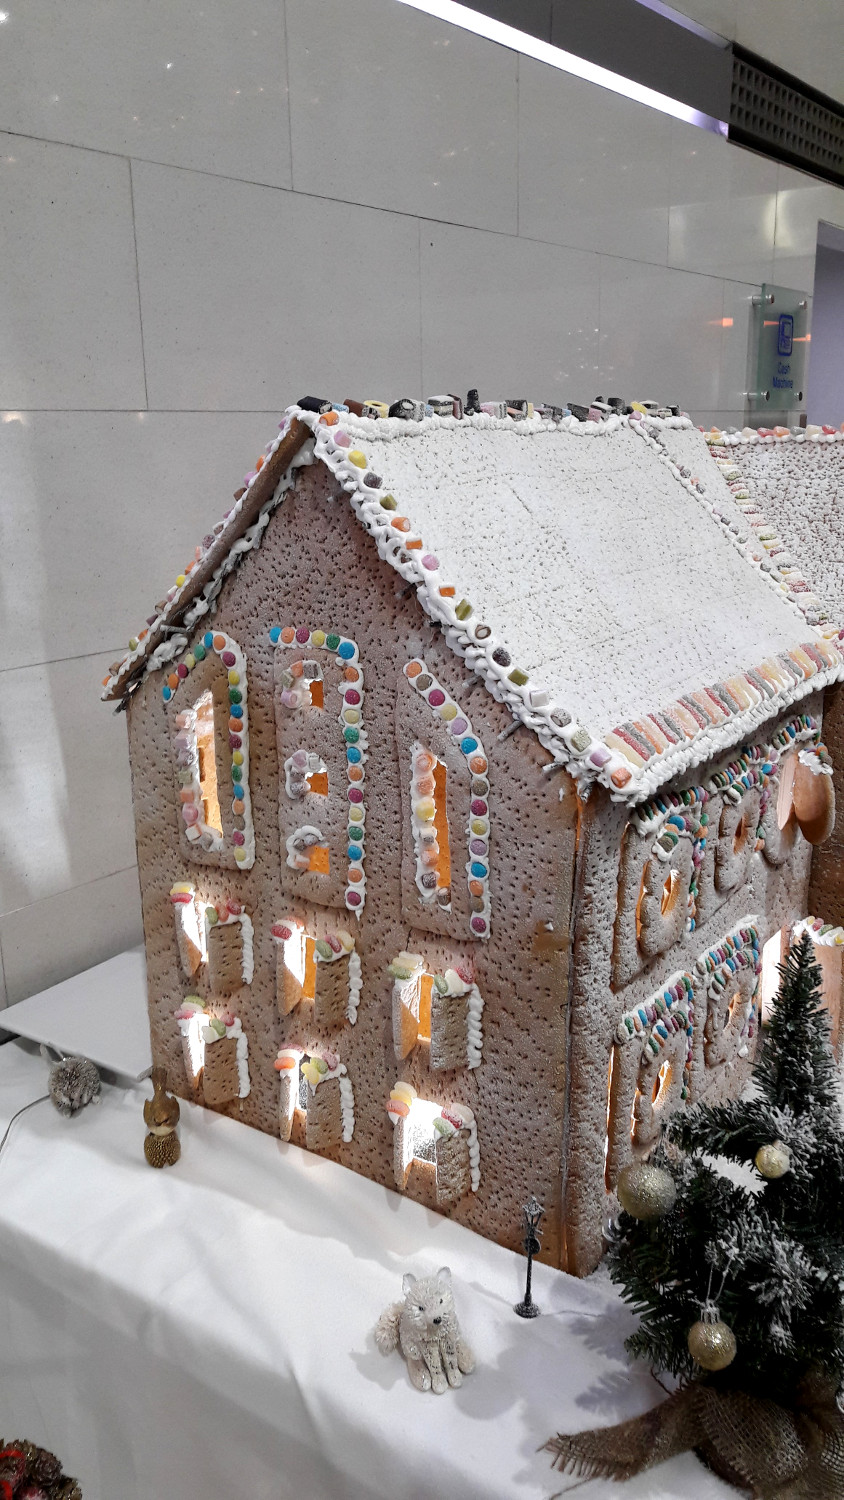 Gingerbread house at Hilton London Heathrow Airport